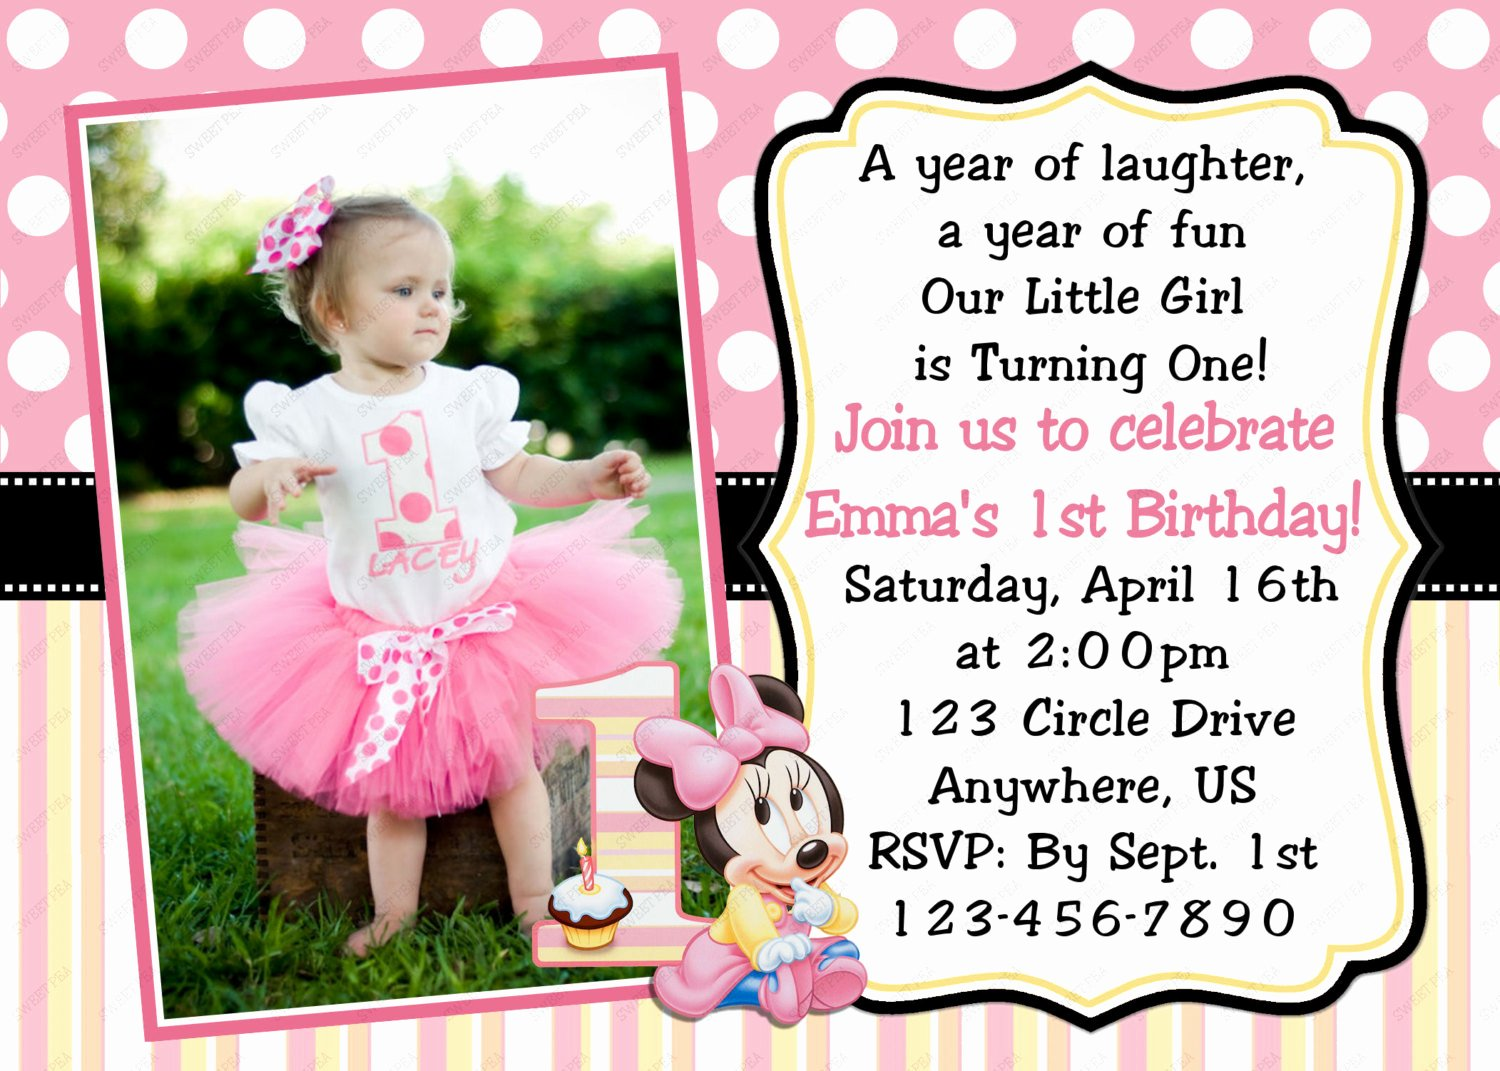 1st Birthday Invitation Template Beautiful Minnie Mouse 1st Birthday Invitations Template